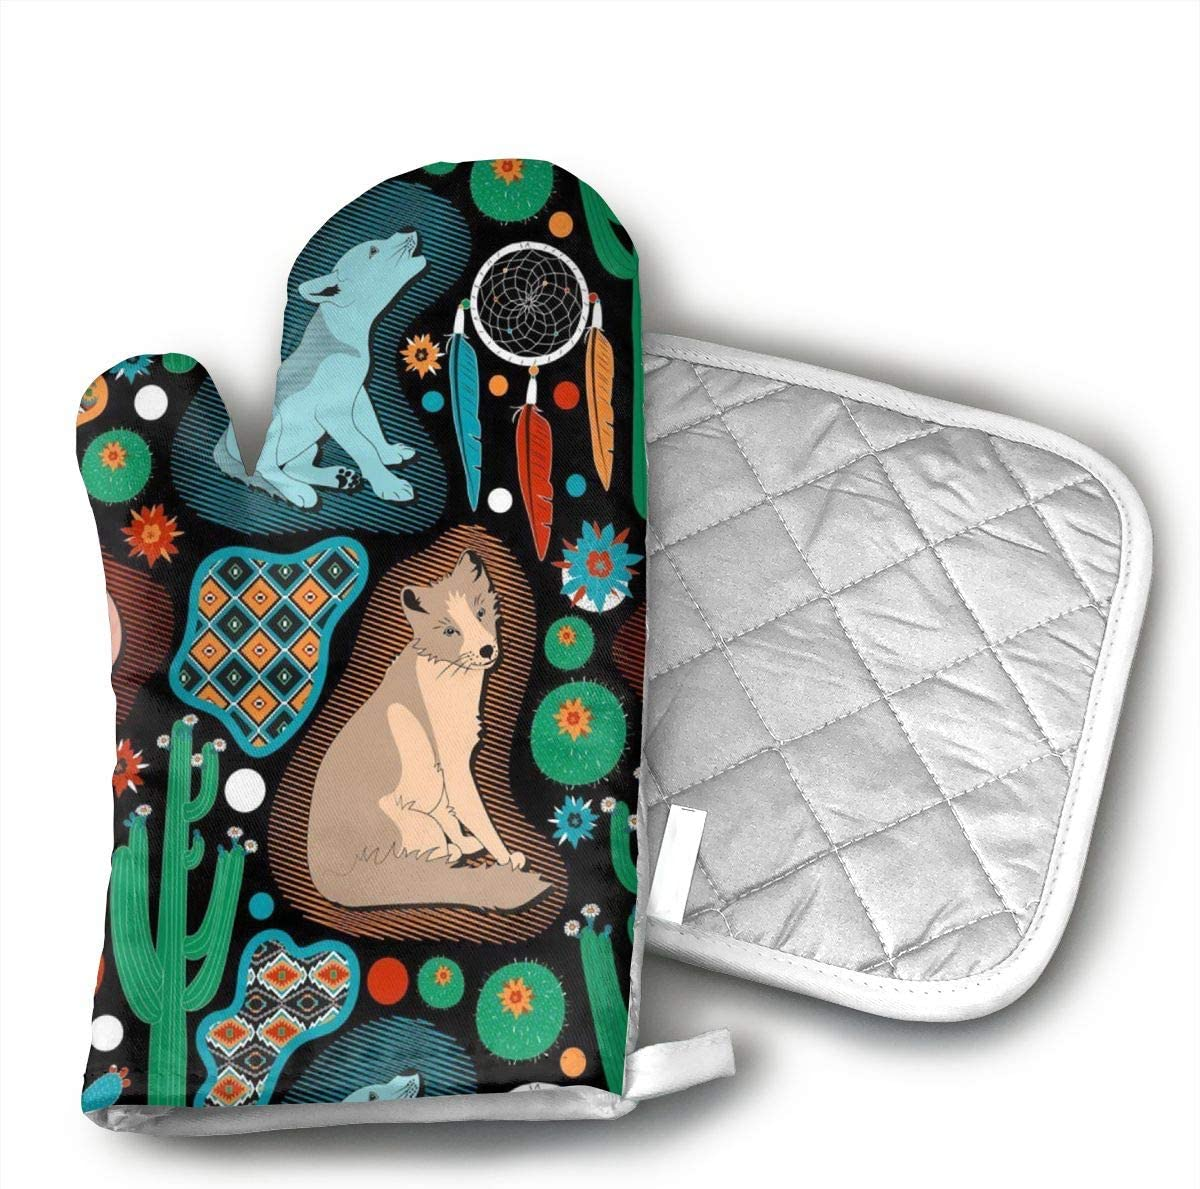 CHWEYAQ Southwest Baby Wolves Oven Mitts and Potholders Sets for Kitchen Counter Safe Mats and Advanced Heat Resistant Oven Mitt,